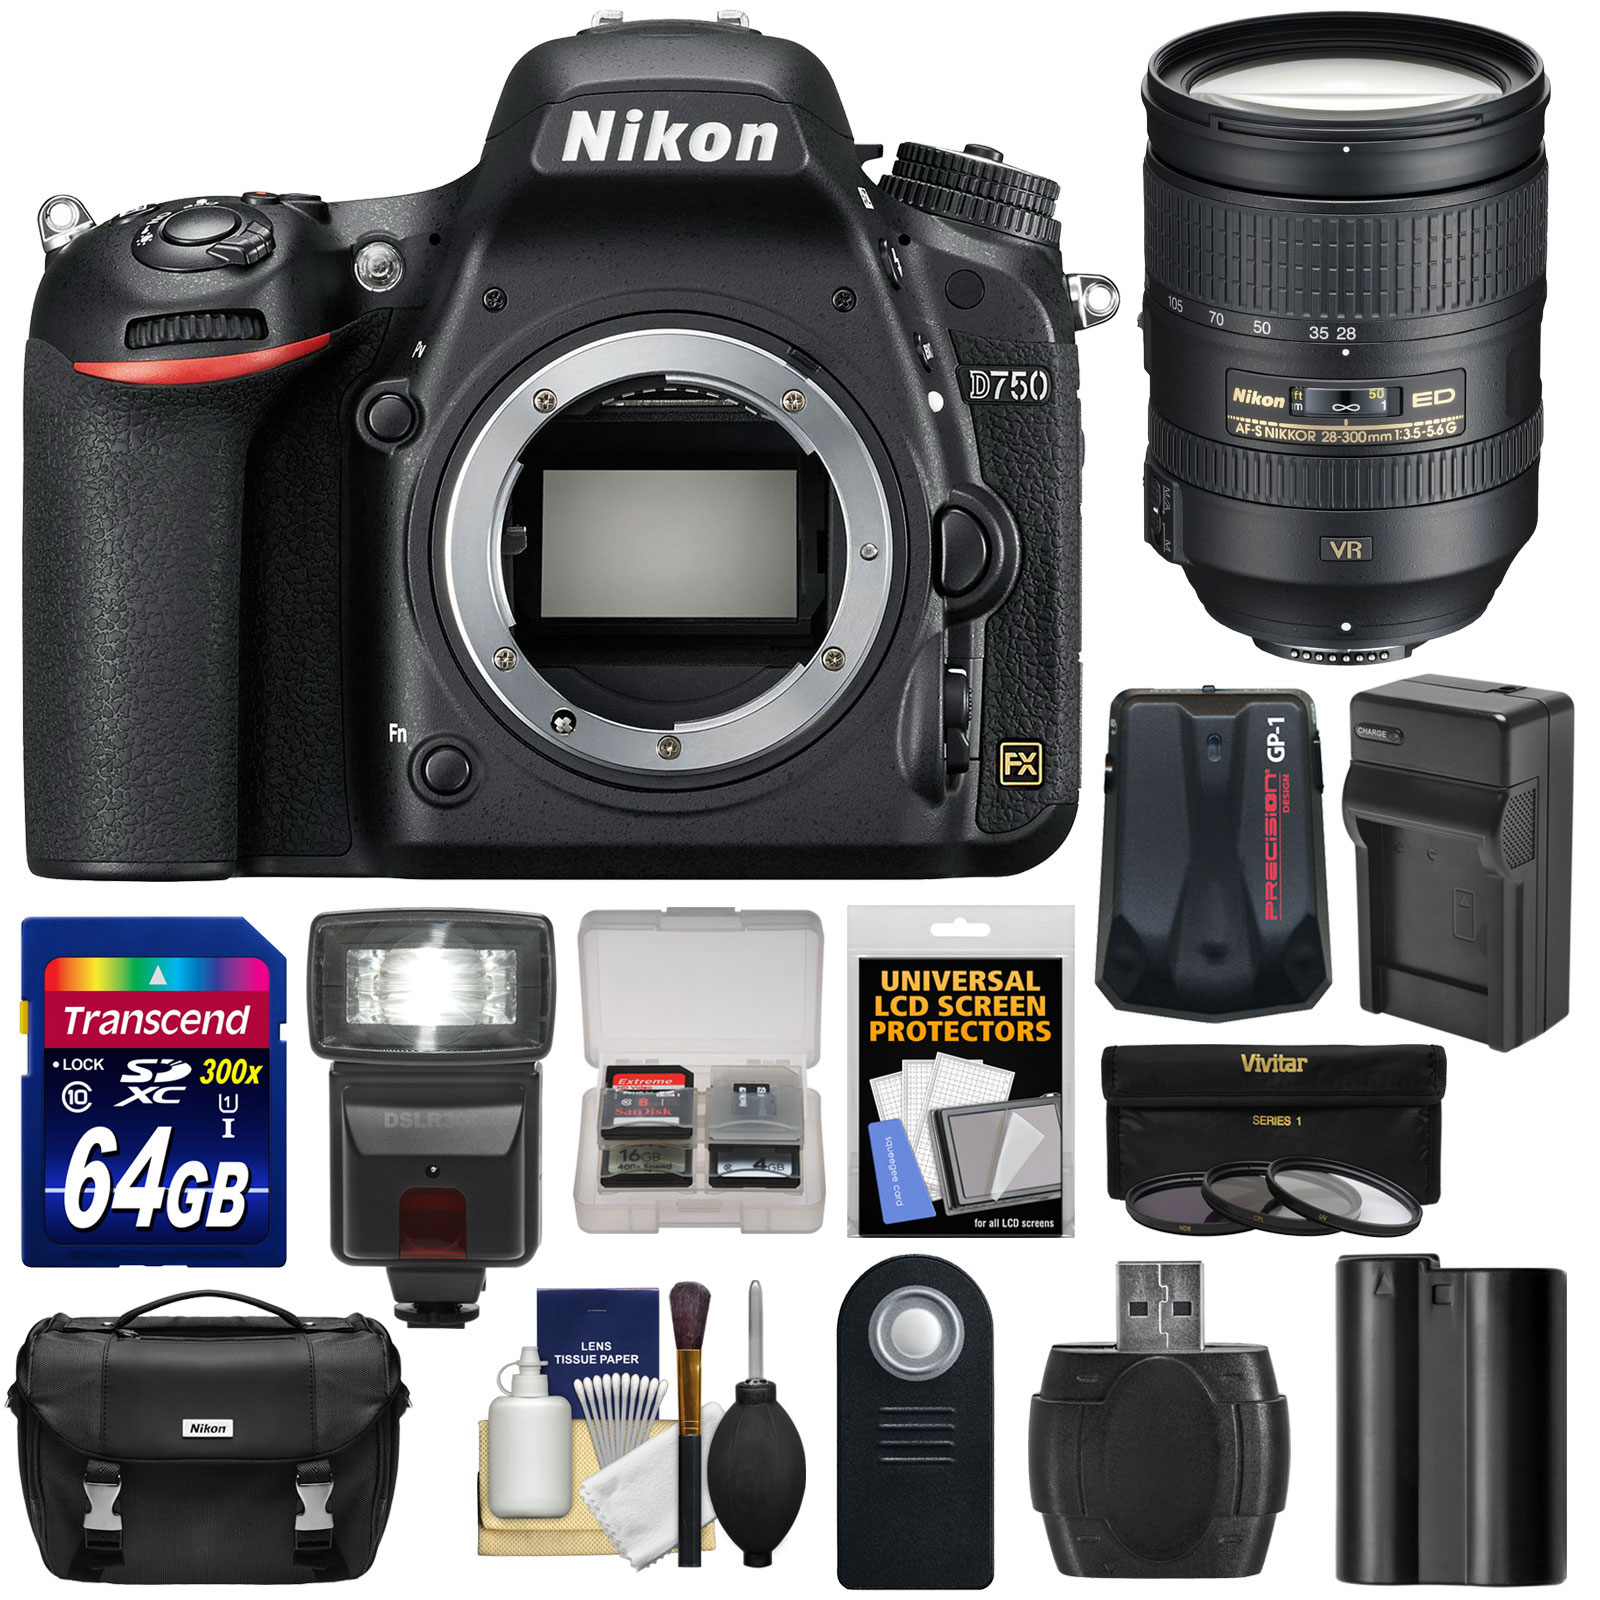 Nikon D750 Digital SLR Camera Body with 28-300mm VR Lens + 64GB Card + Battery + Charger + Case + Filters +... by Nikon